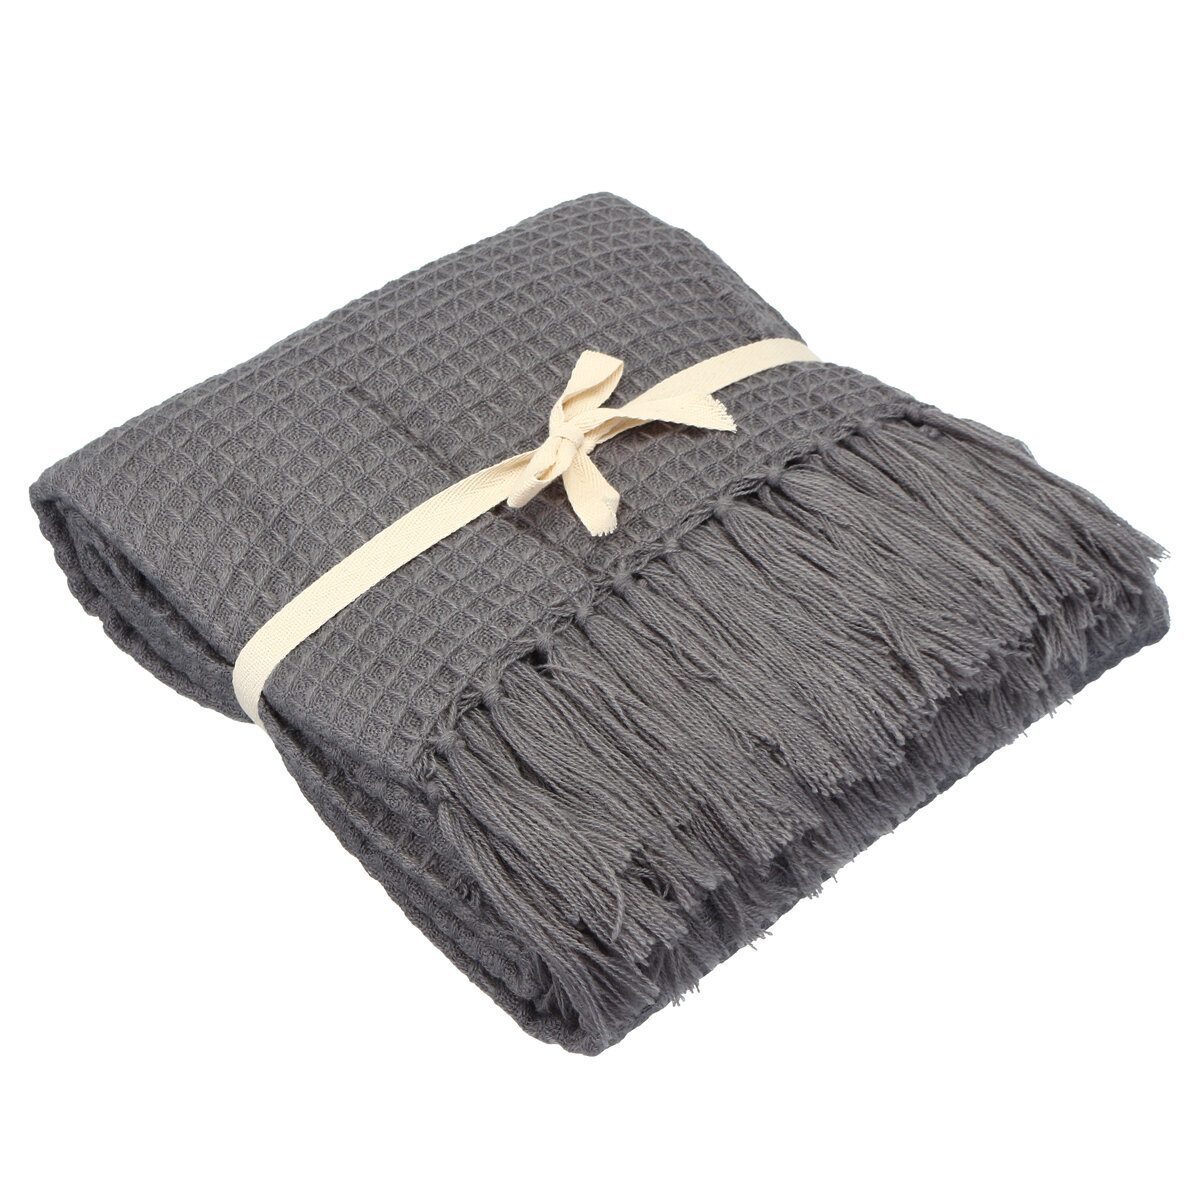 Decorative Sofa Throws Blankets Soft Knitted Throw Blankets Bed Sofa Couch Decorative Fringe Waffle Pattern